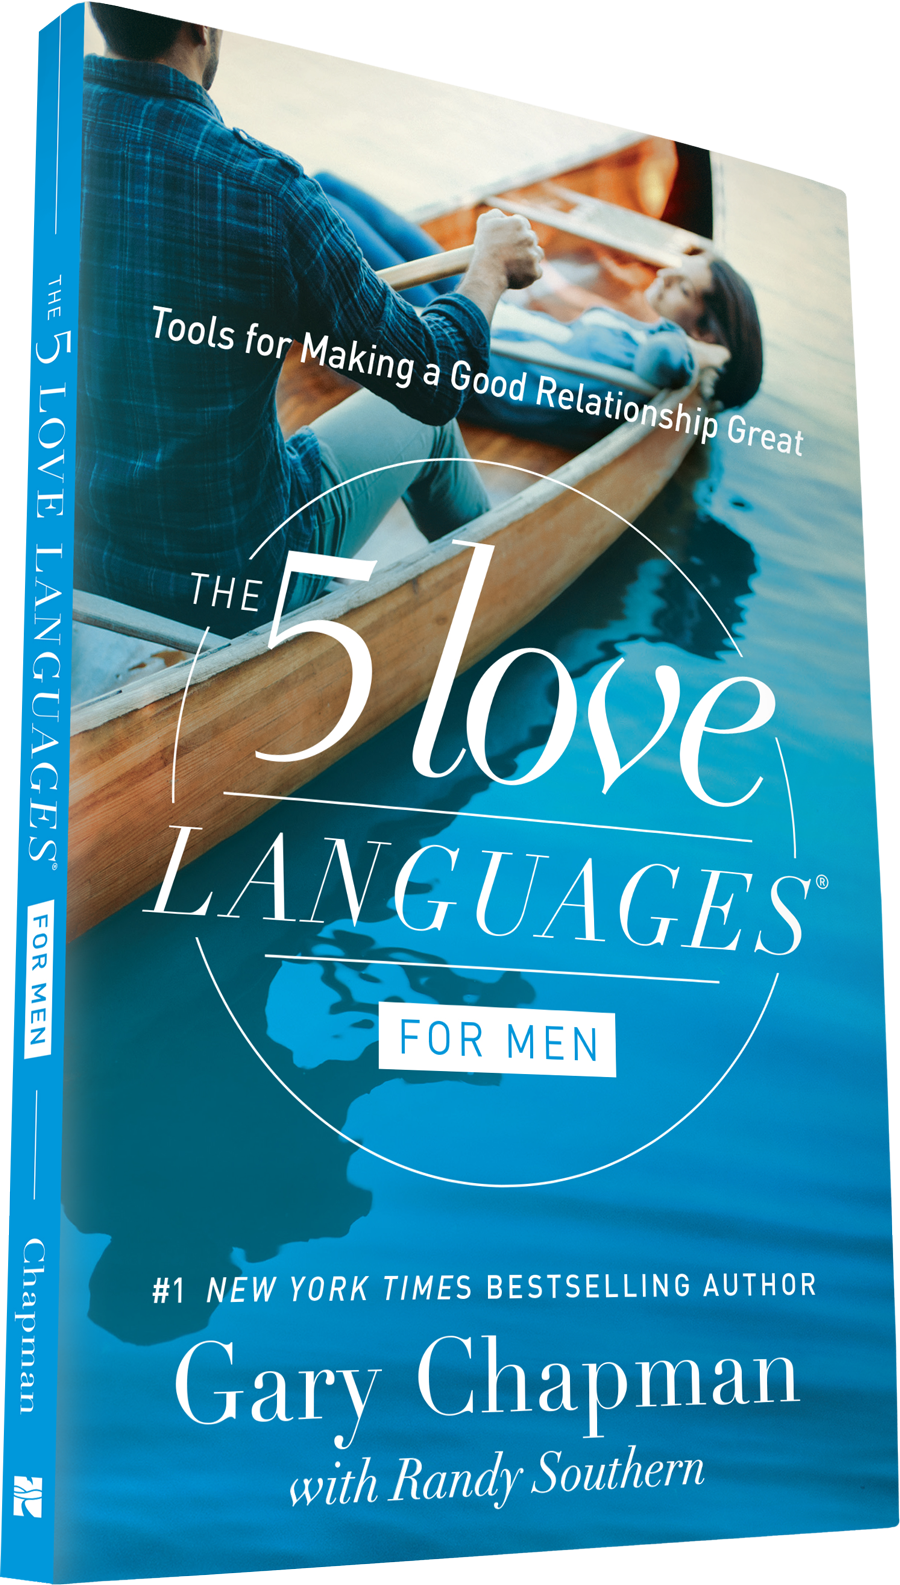 S Ys Bits And Pieces The 5 Love Languages For Men By Dr Gary Chapman Book Review Giveaway 5ll4men Ends 3 2